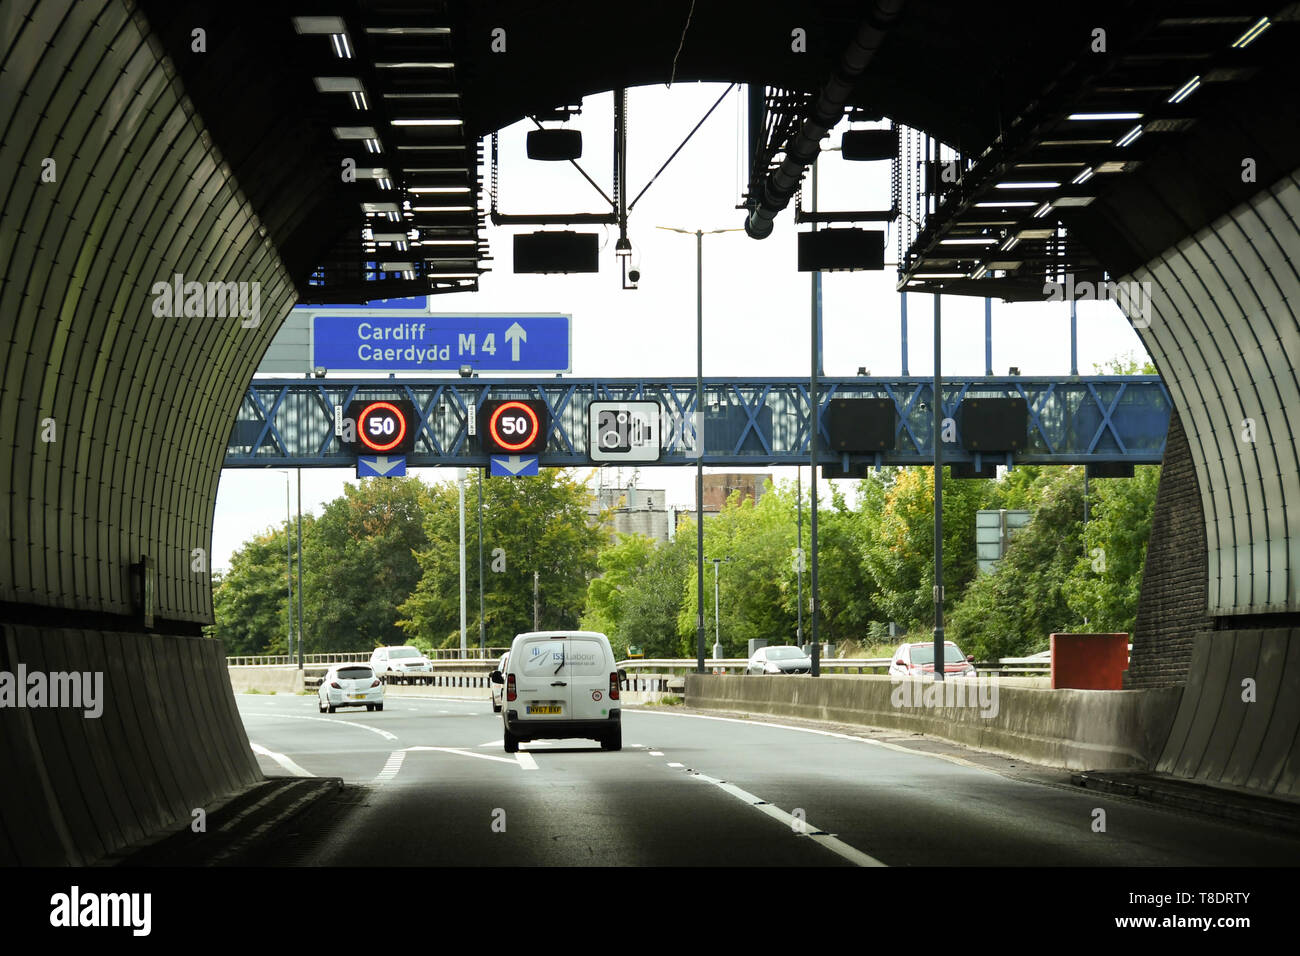 NEWPORT, WALES - SEPTEMBER 2018: White van on the M4 motorway about to exit the Brynglas Tunnels at Newport. The tunnels are a major bottleneck. A dec - Stock Image